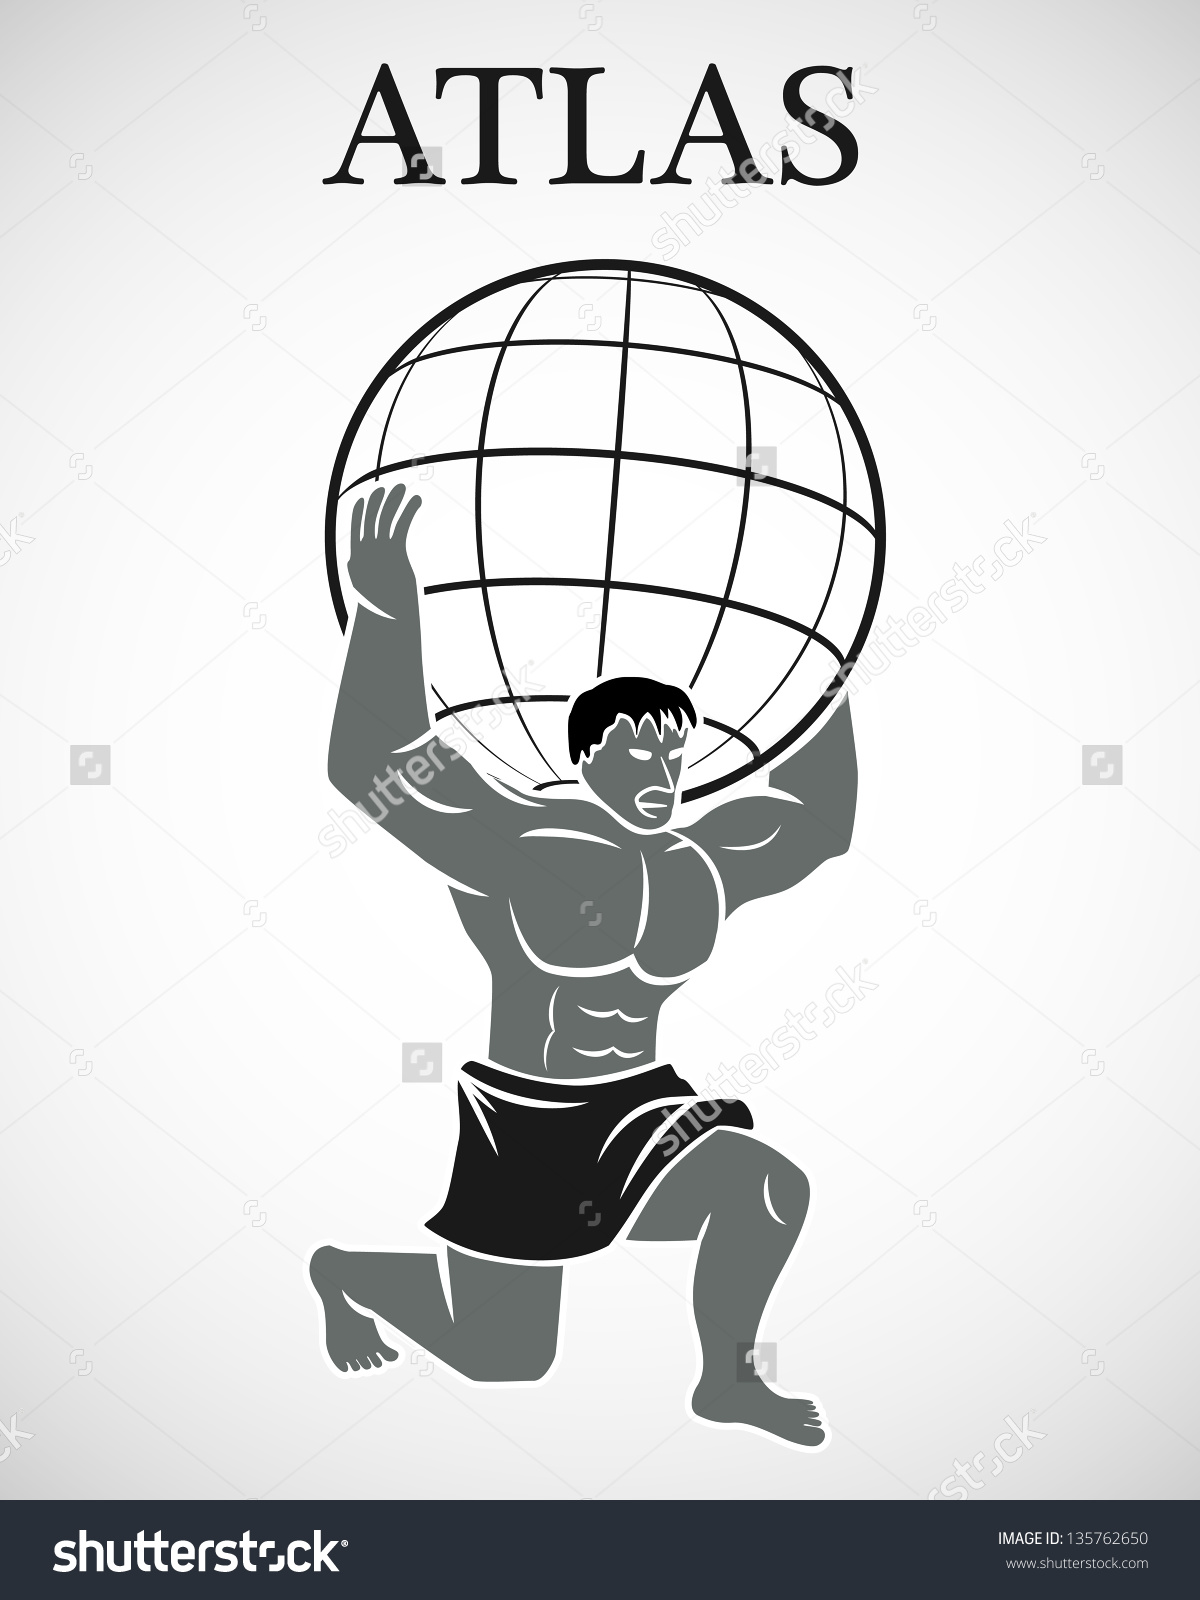 Greek god atlas clipart picture free download Greek god atlas clipart - ClipartFest picture free download